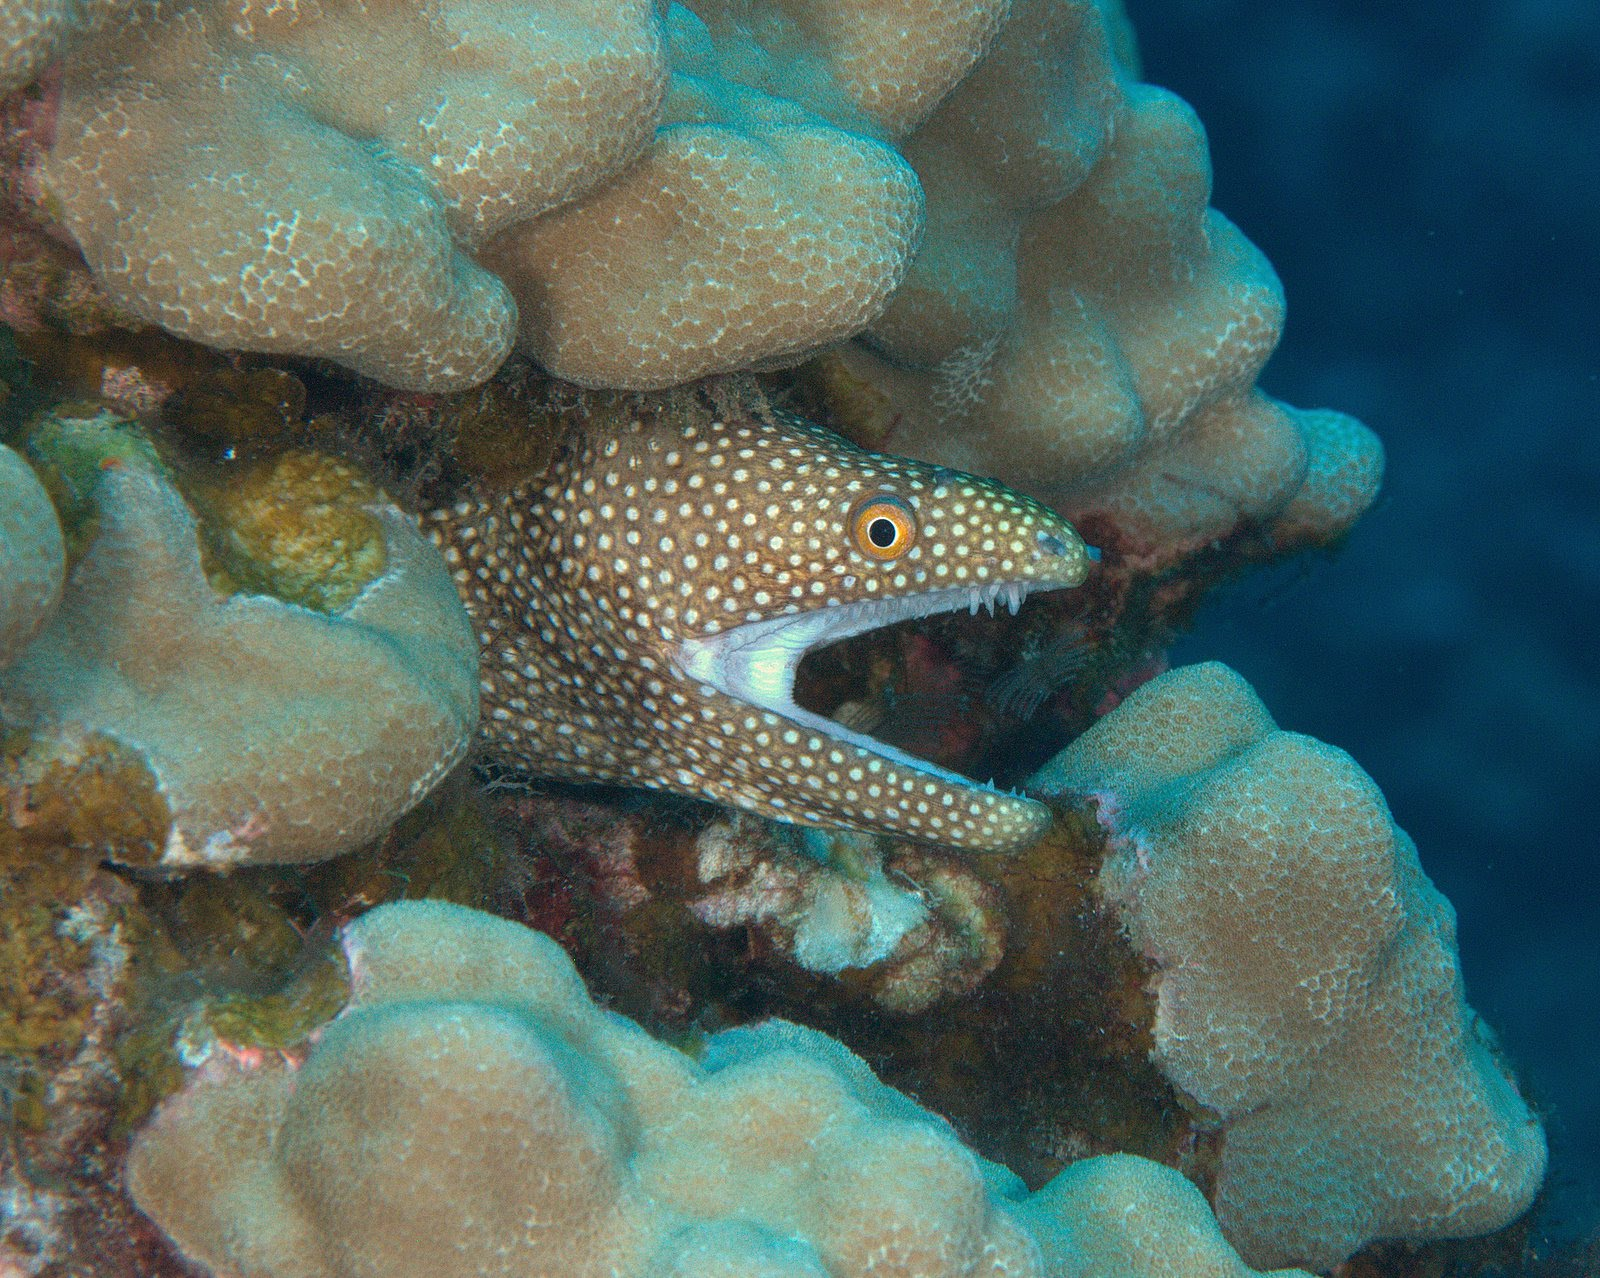 under pressure world: White Mouth Moray Eel- Kona, HI